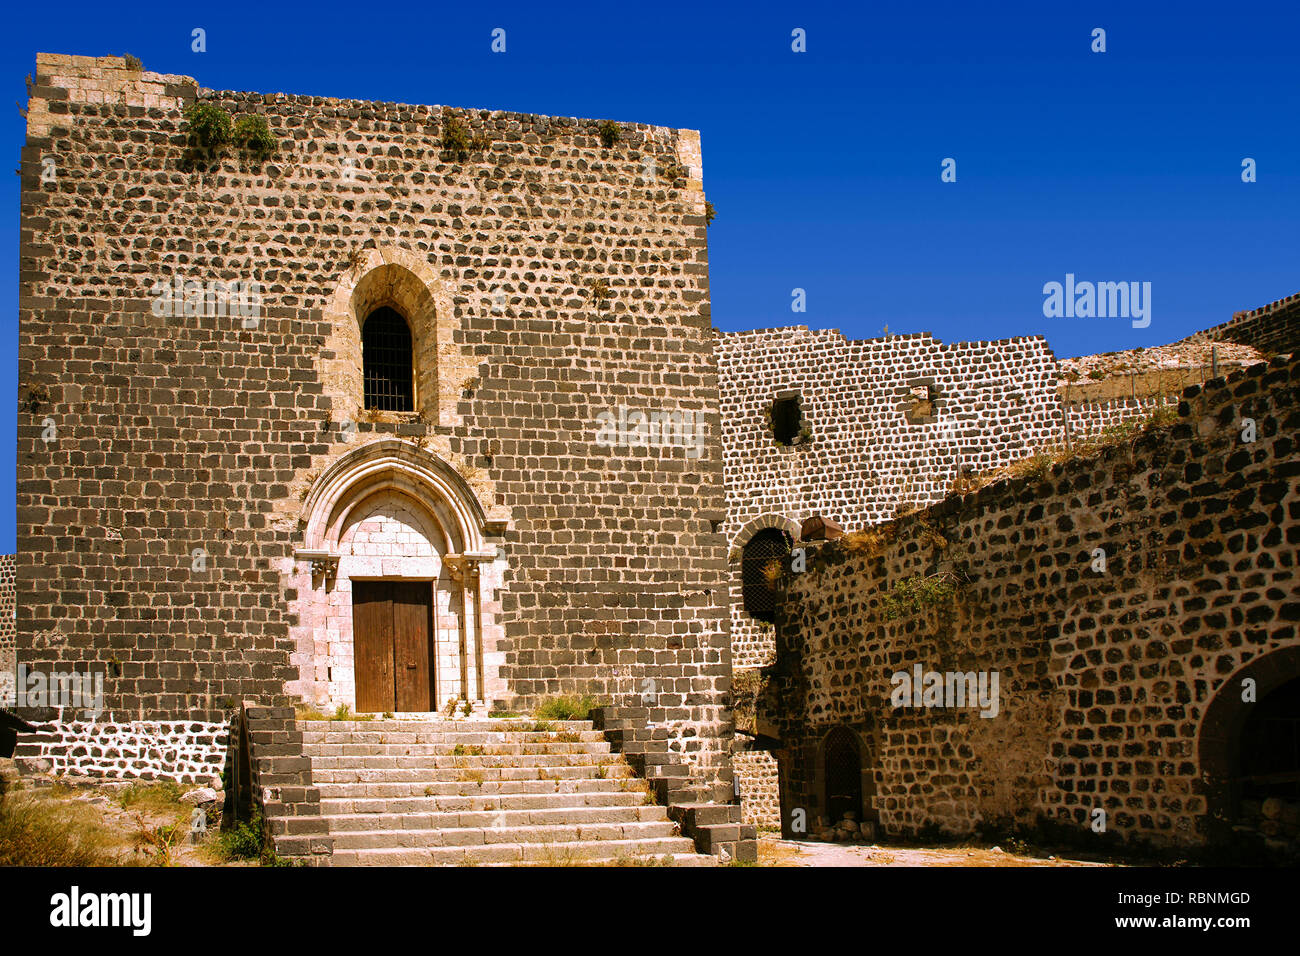 Chapel, The Margat castle of the crusaders, entrance gate. Marqab, Syria, Middle East Stock Photo